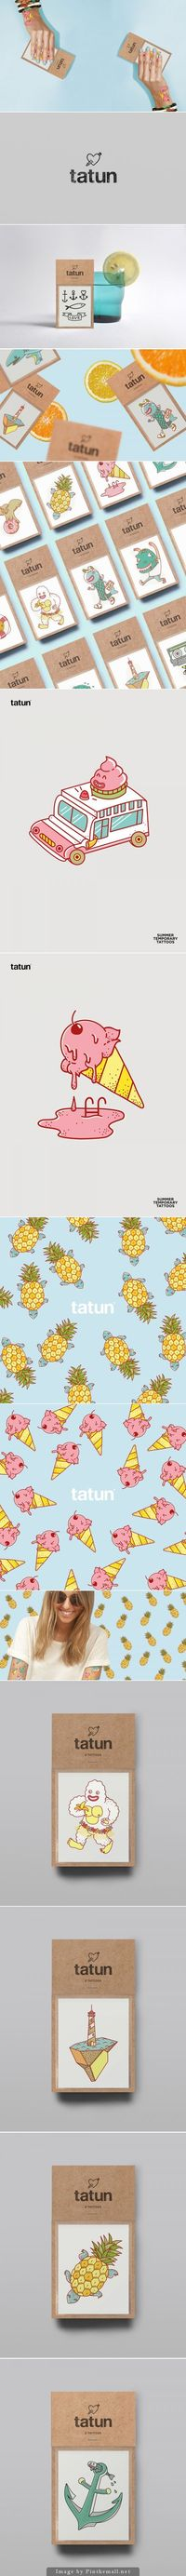 """California summer has arrived and in SoCal and we like to spend hot sunny days bronzing at the beach and enjoying fresh pineapple! TATUN Temporary Art Tattoos �€"""""""